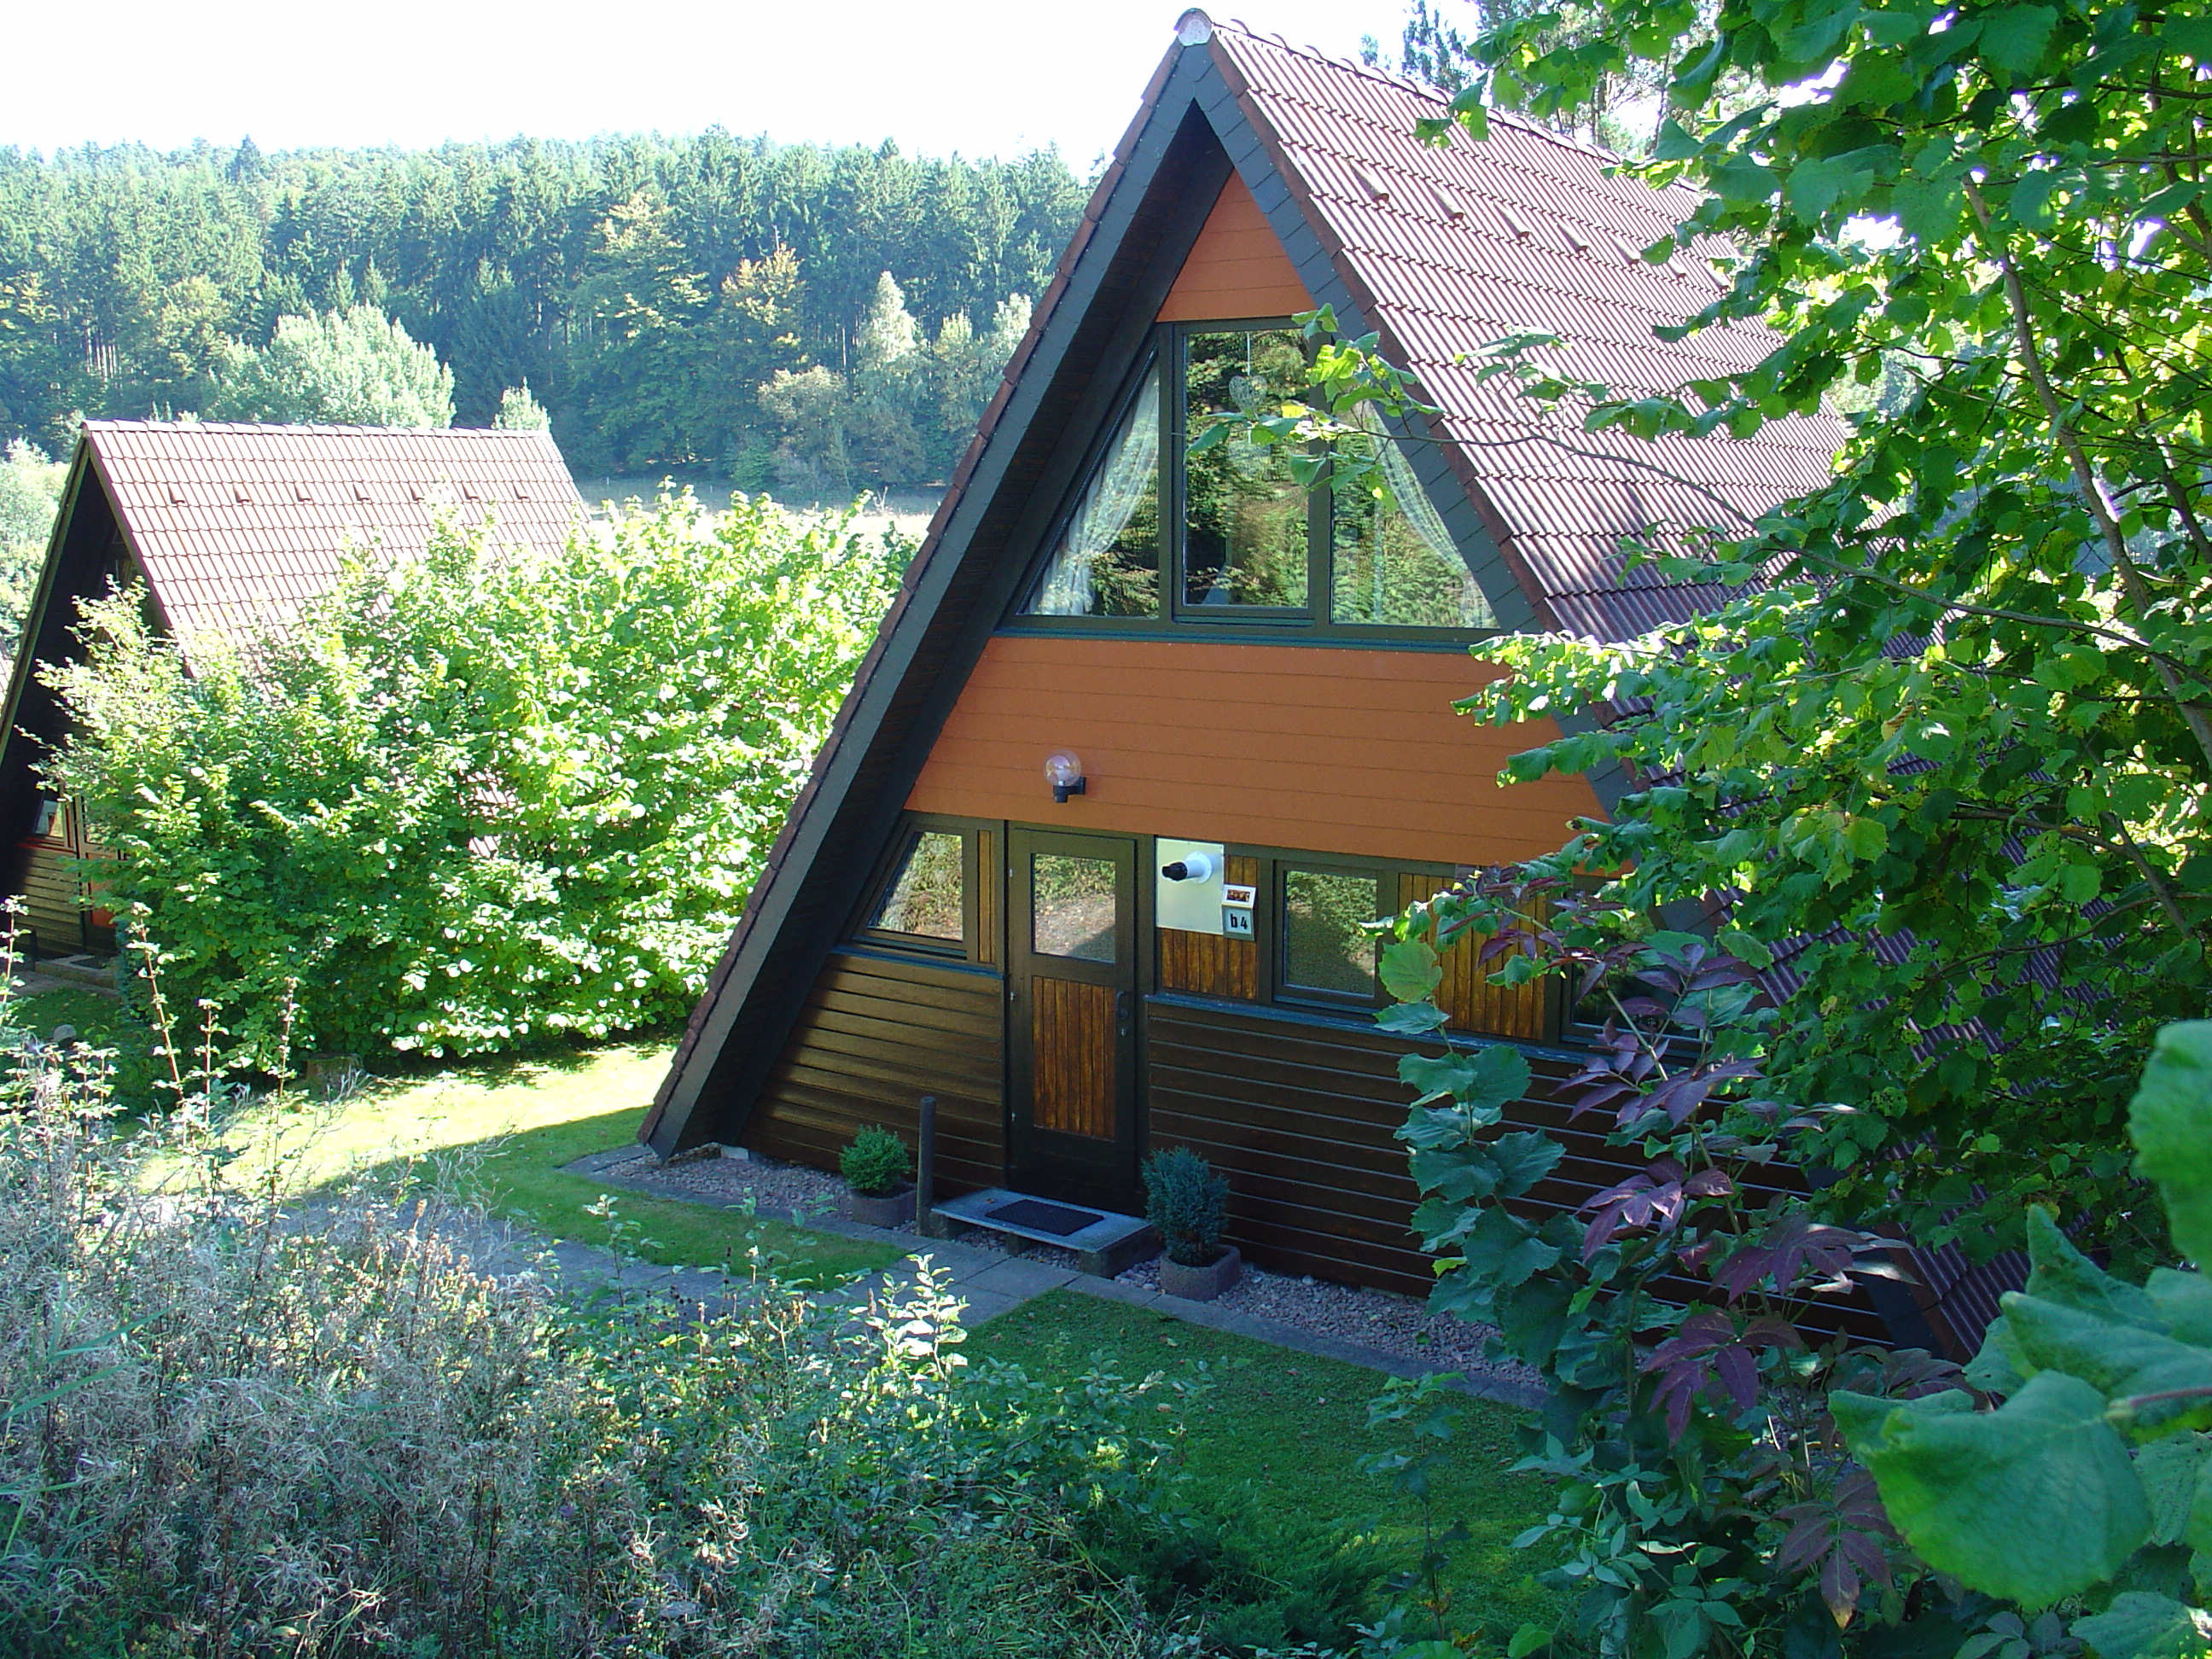 Holiday apartment Type Winnetou (368182), Ronshausen, North Hessen, Hesse, Germany, picture 5